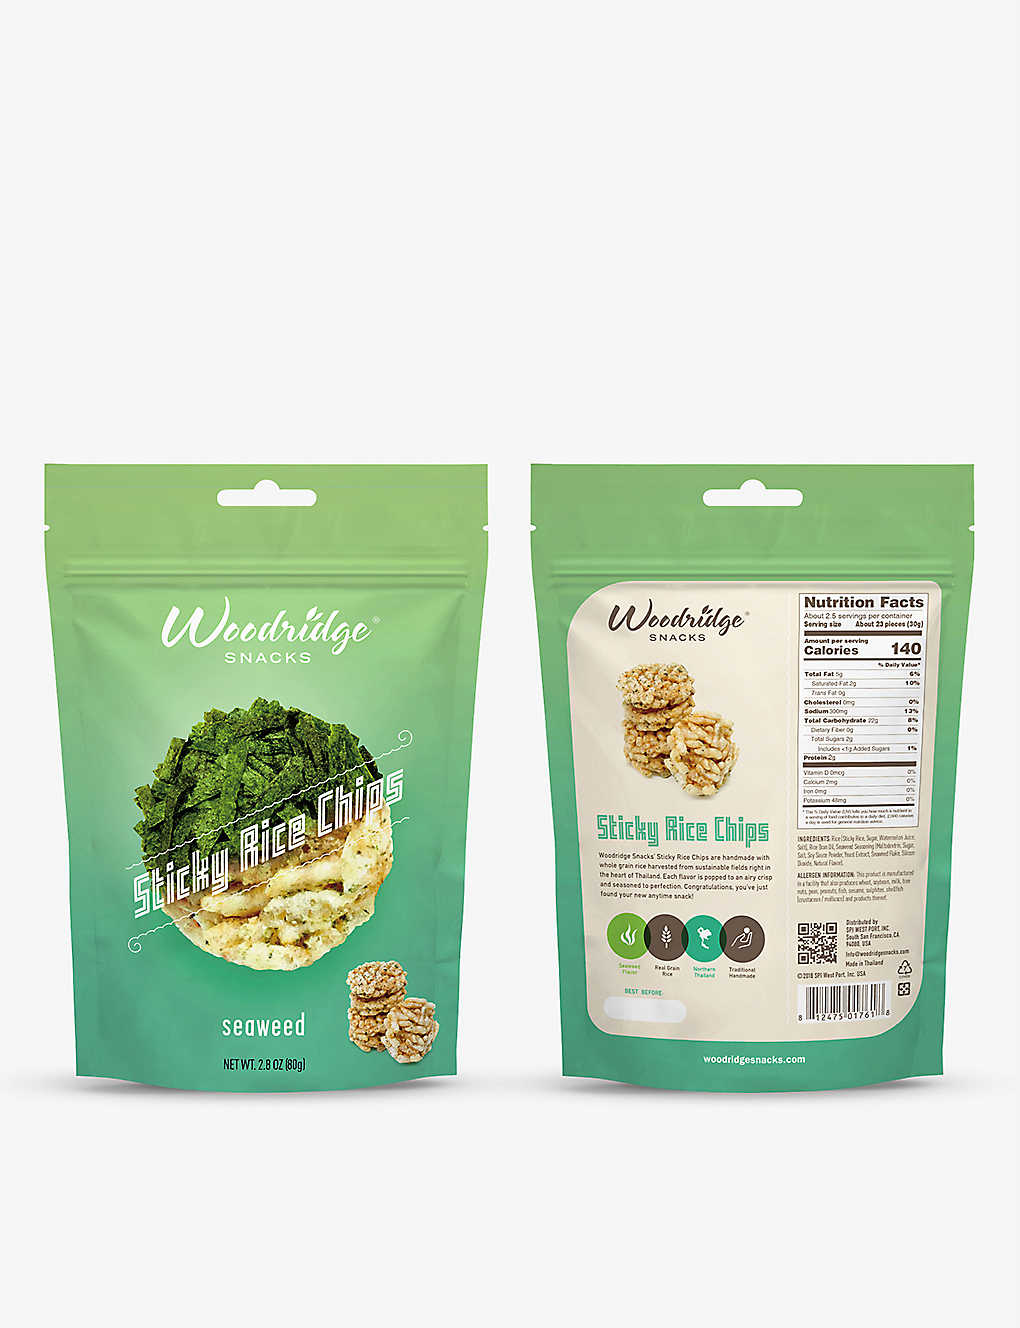 SEAWEED: Woodridge Snacks Seaweed Sticky Rice Chips 80g